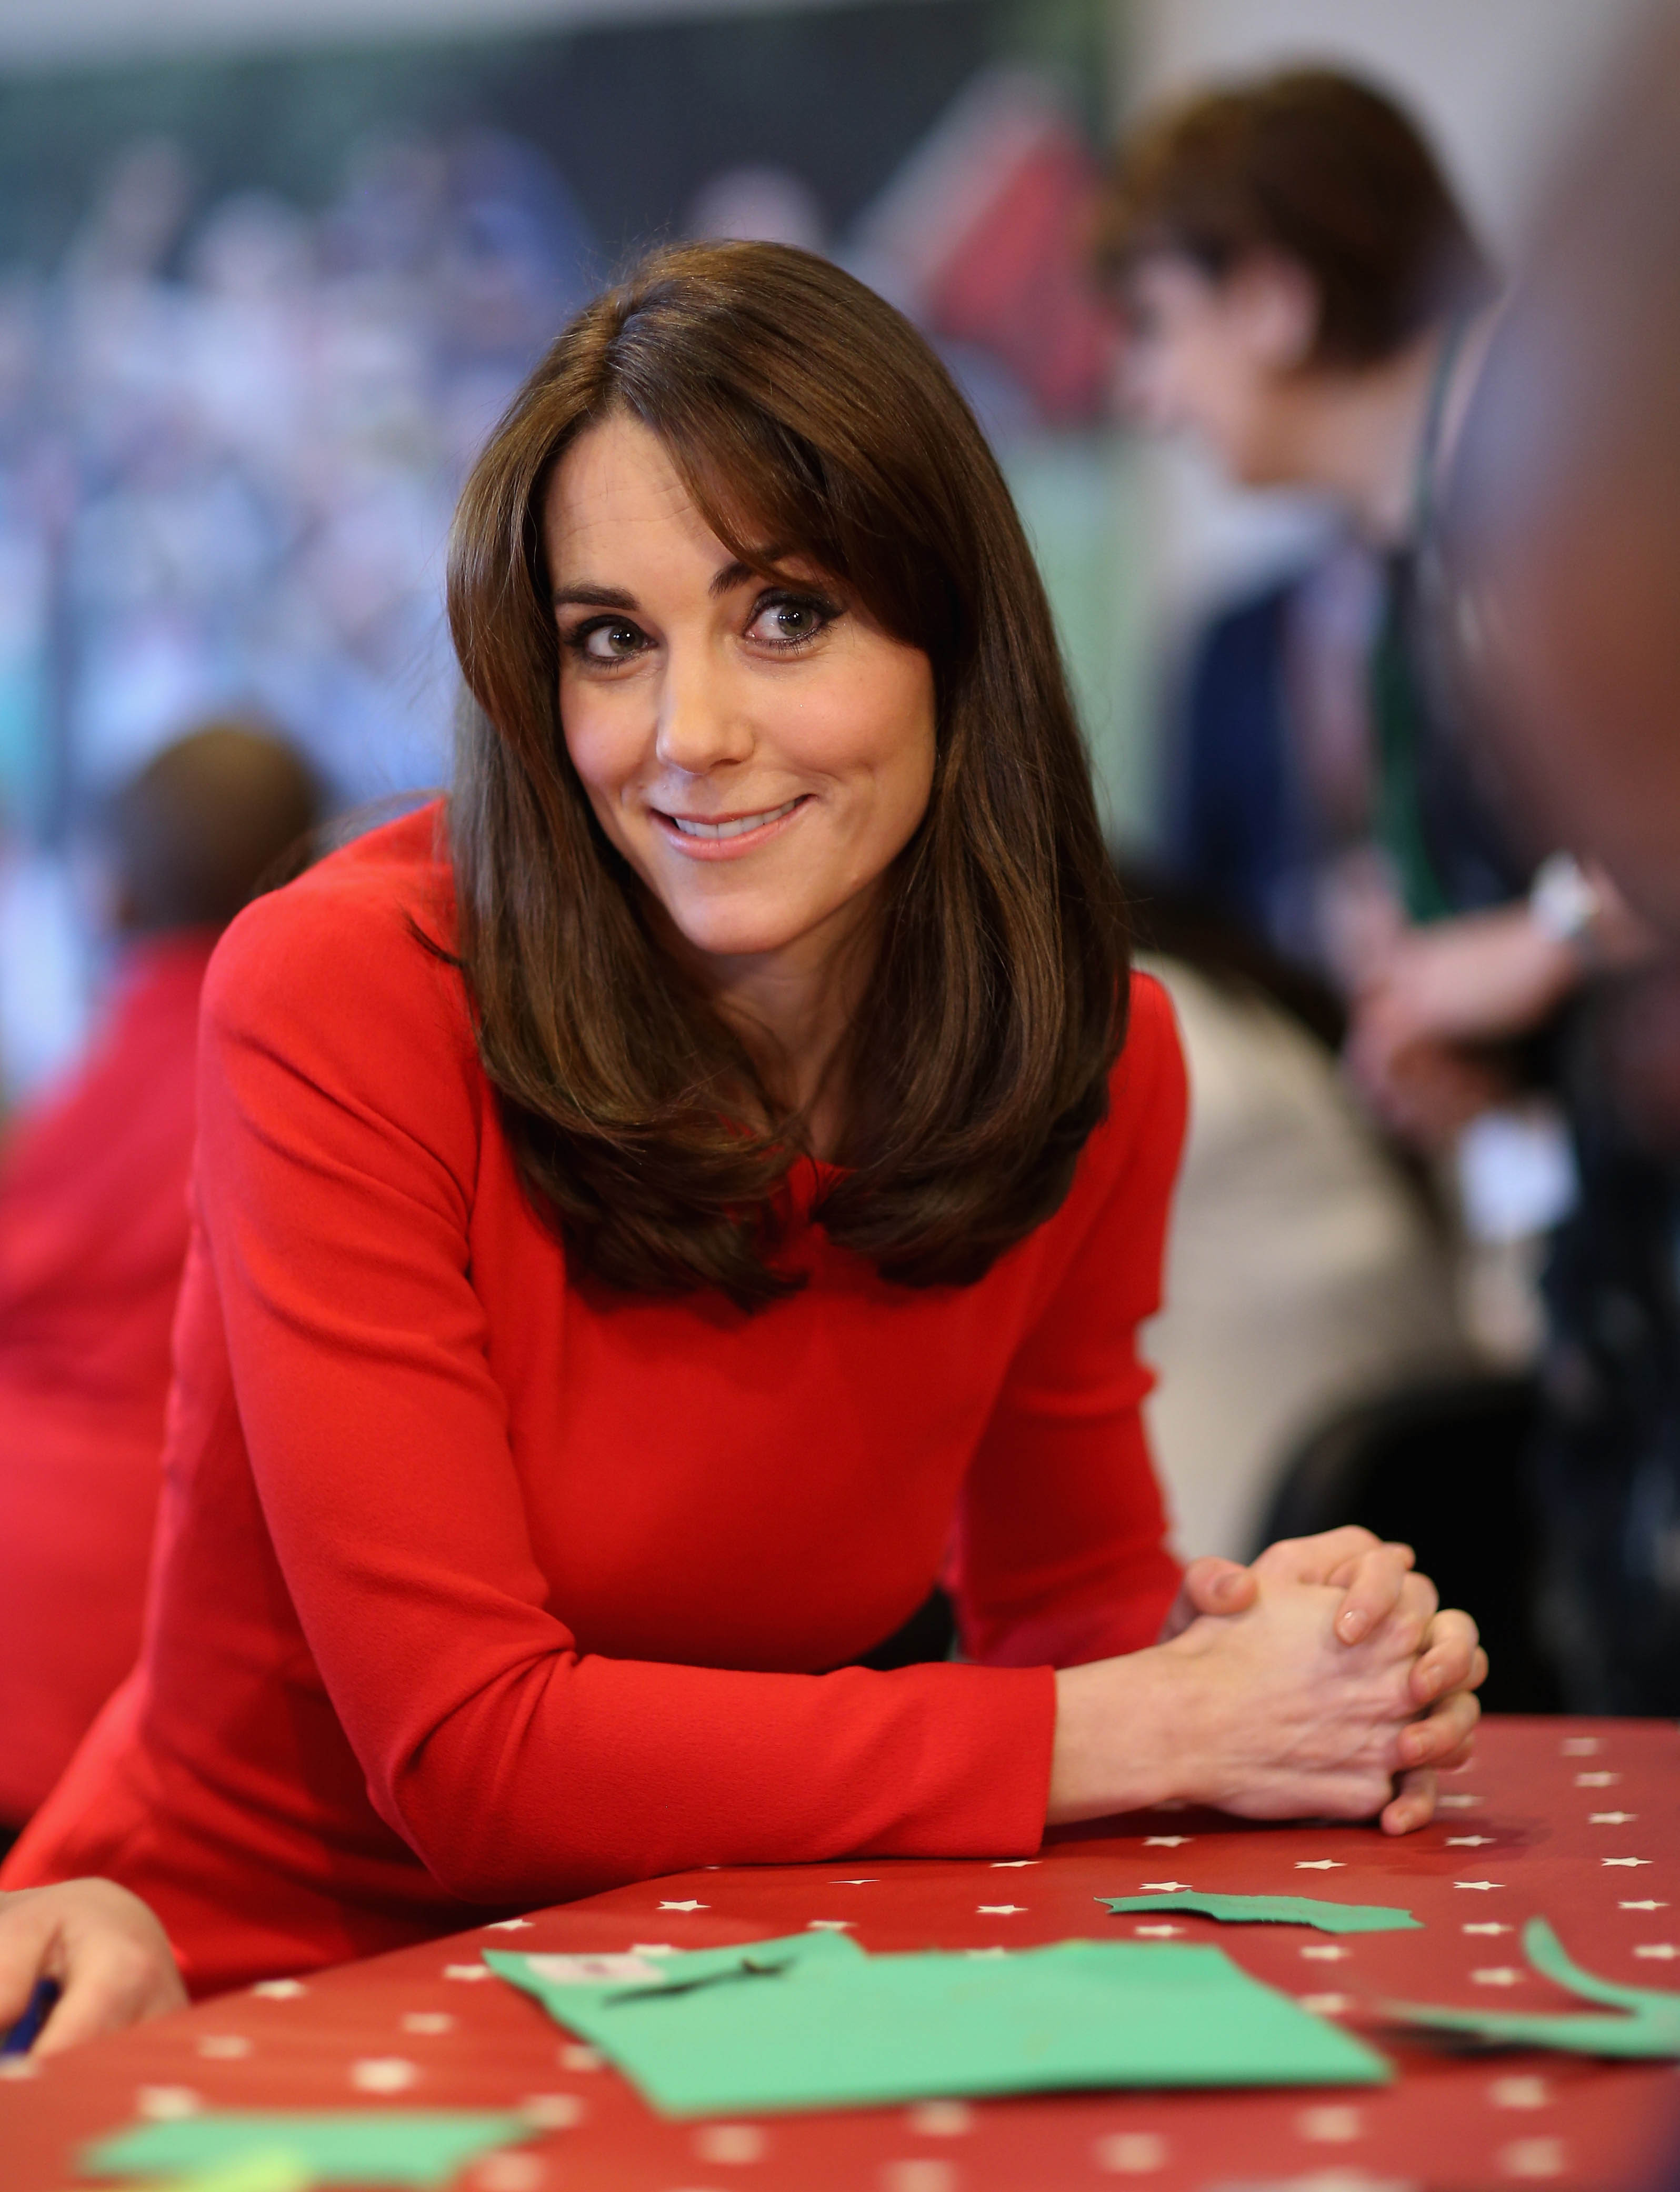 Photo by: KGC-375/STAR MAX/IPx201512/15/15Catherine The Duchess of Cambridge visits the Anna Freud Centre in Islington and attends their annual Christmas party.  The Duchess joined groups of families in festive activities designed to help pupils reflect on the positive progress in their social relationships and communication skills.(London, England, UK)